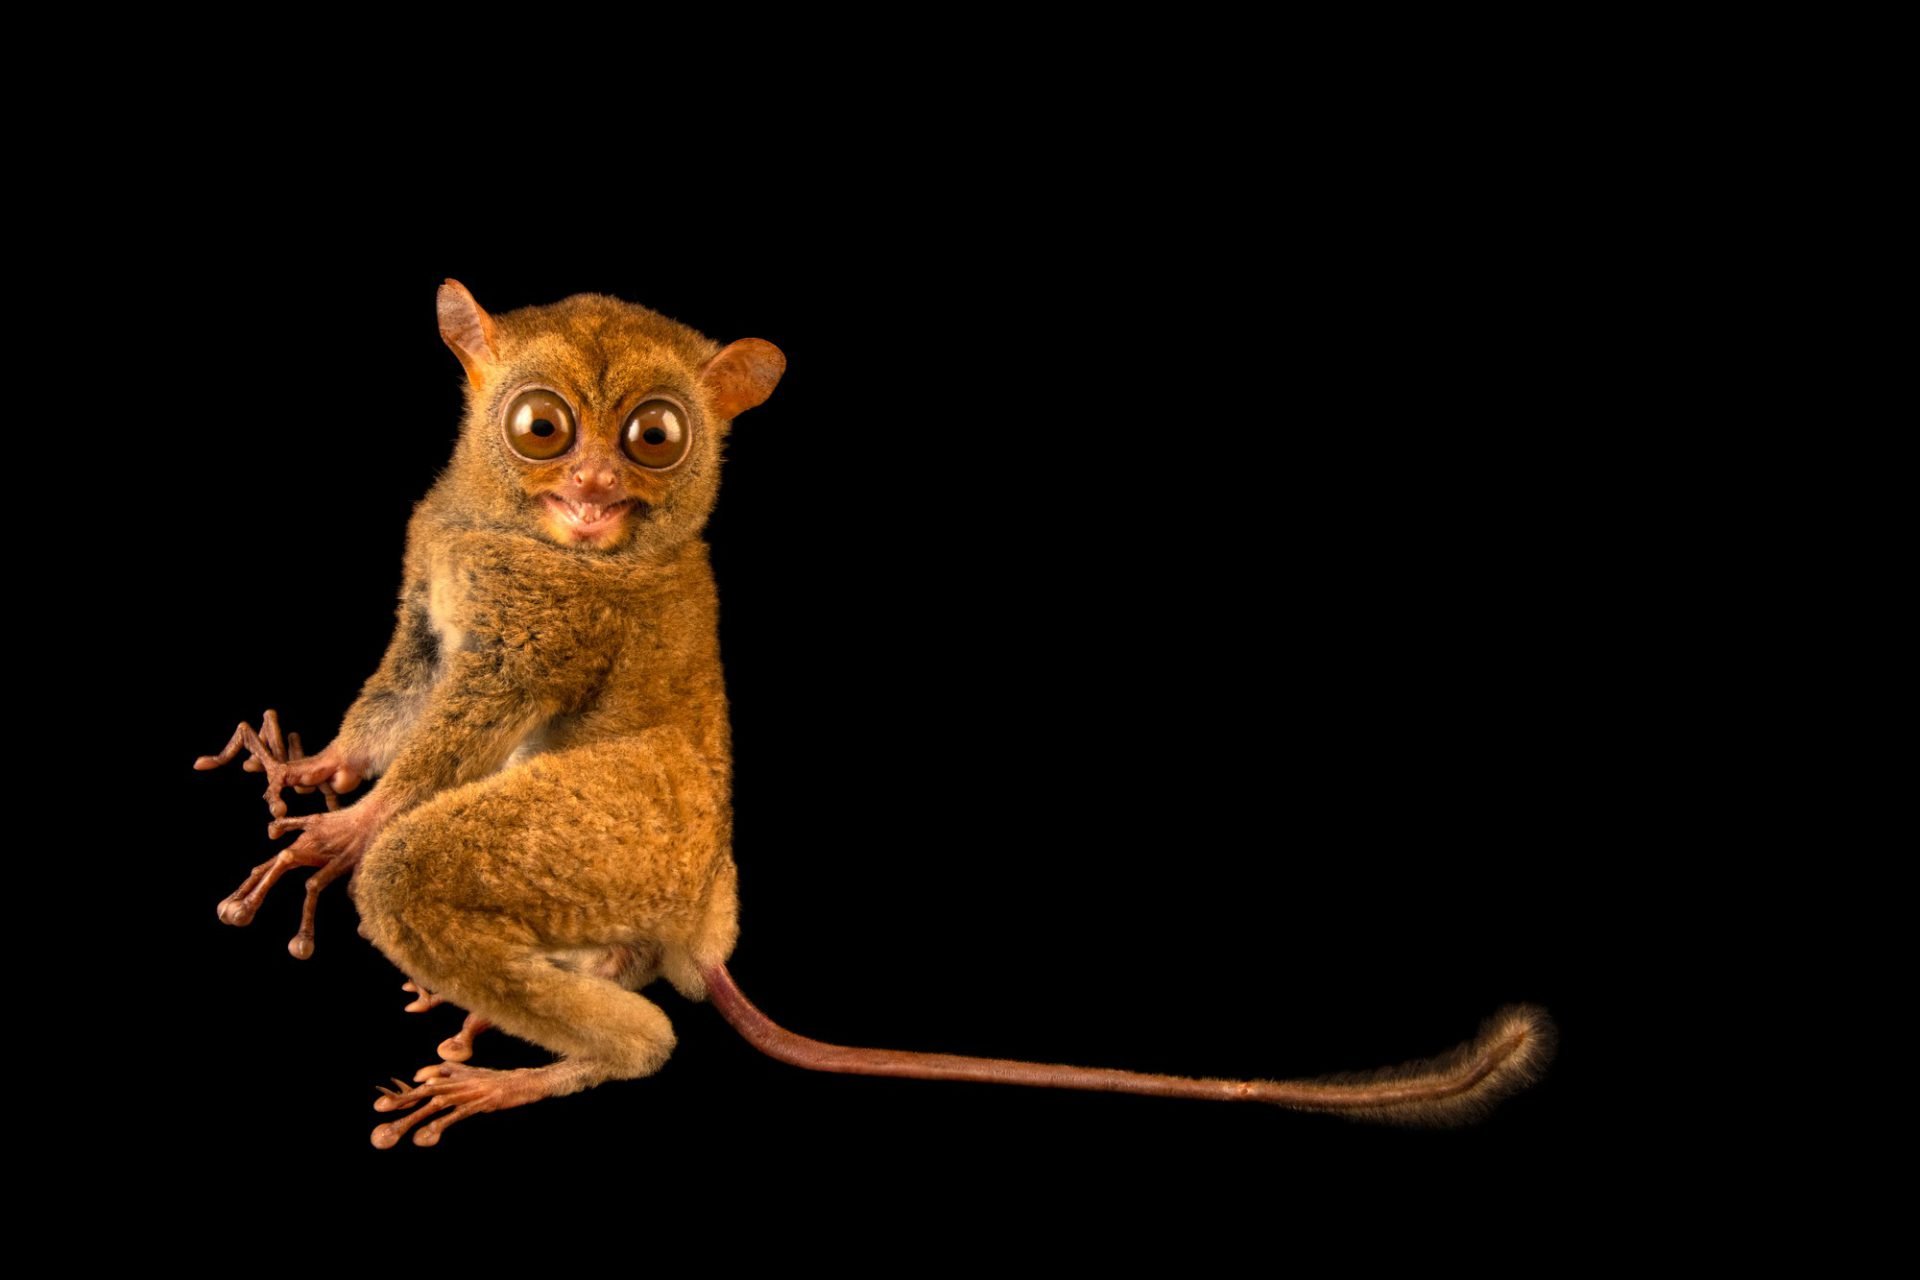 Photo: A western tarsier (Cephalopachus bancanus bancanus) at Ragunan Zoo in Jakarta, Indonesia.